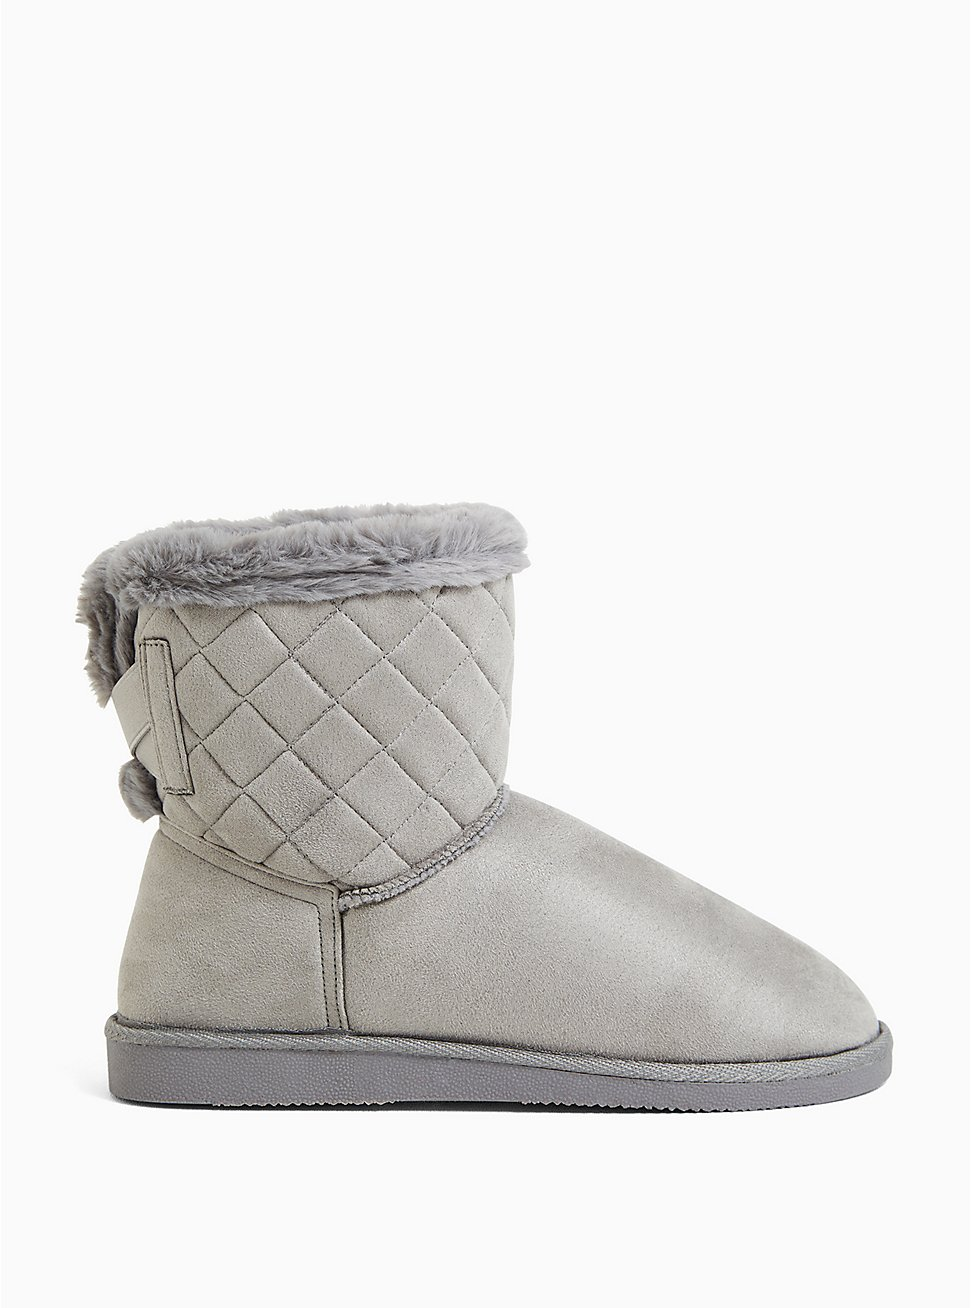 Grey Faux Suede & Faux Fur Trimmed Quilted Cozy Bootie (WW), GREY, hi-res